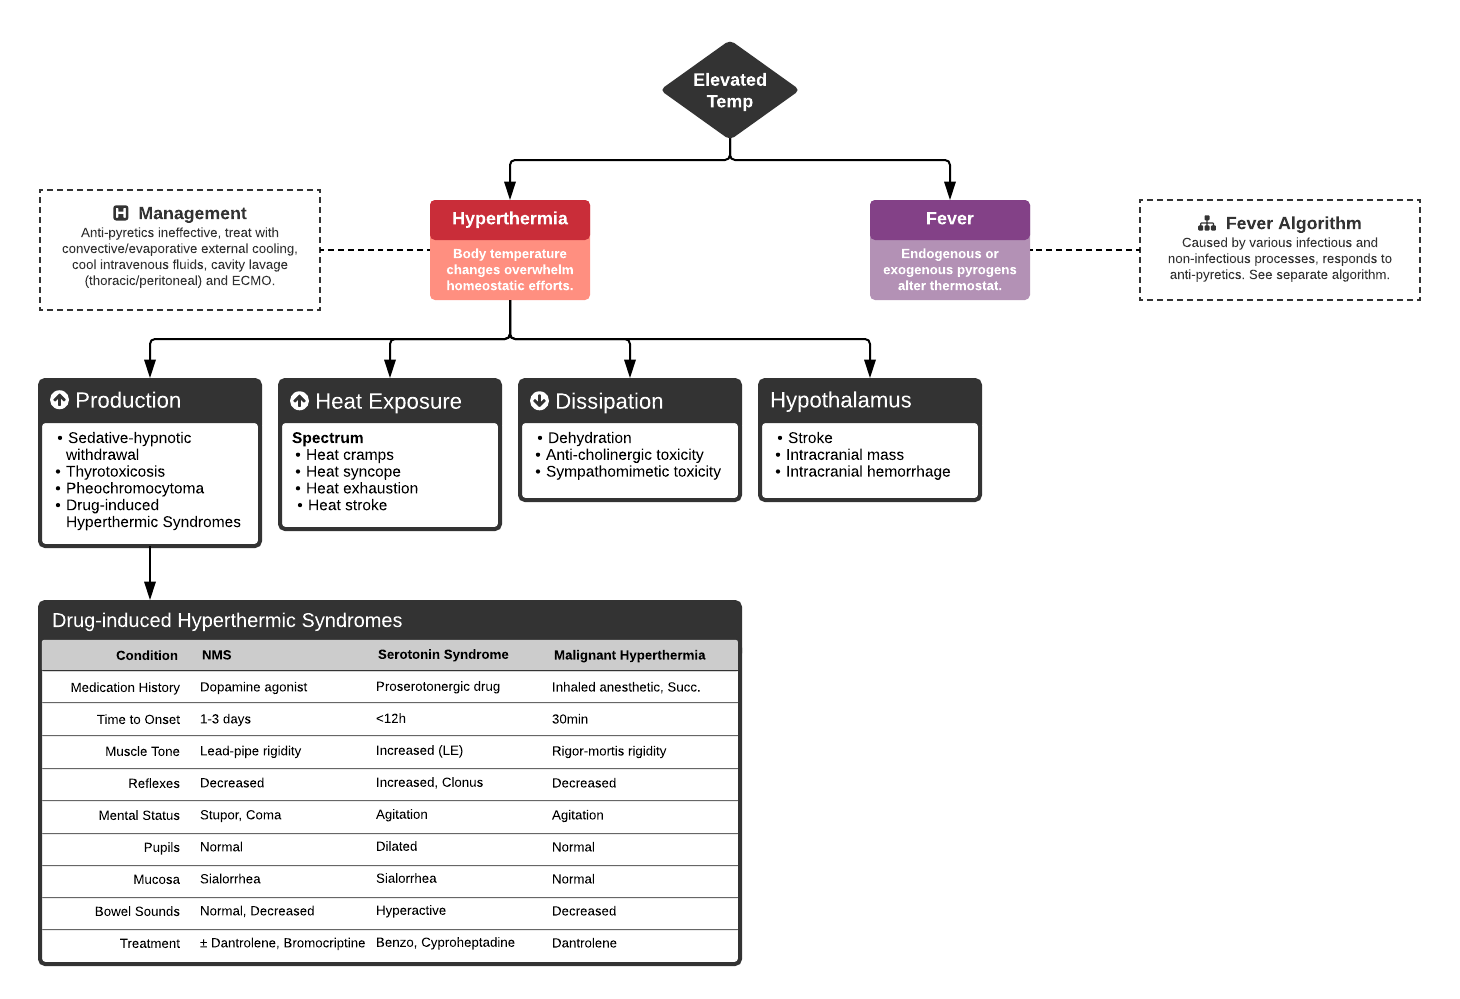 Algorithm for the Evaluation of Hyperthermia